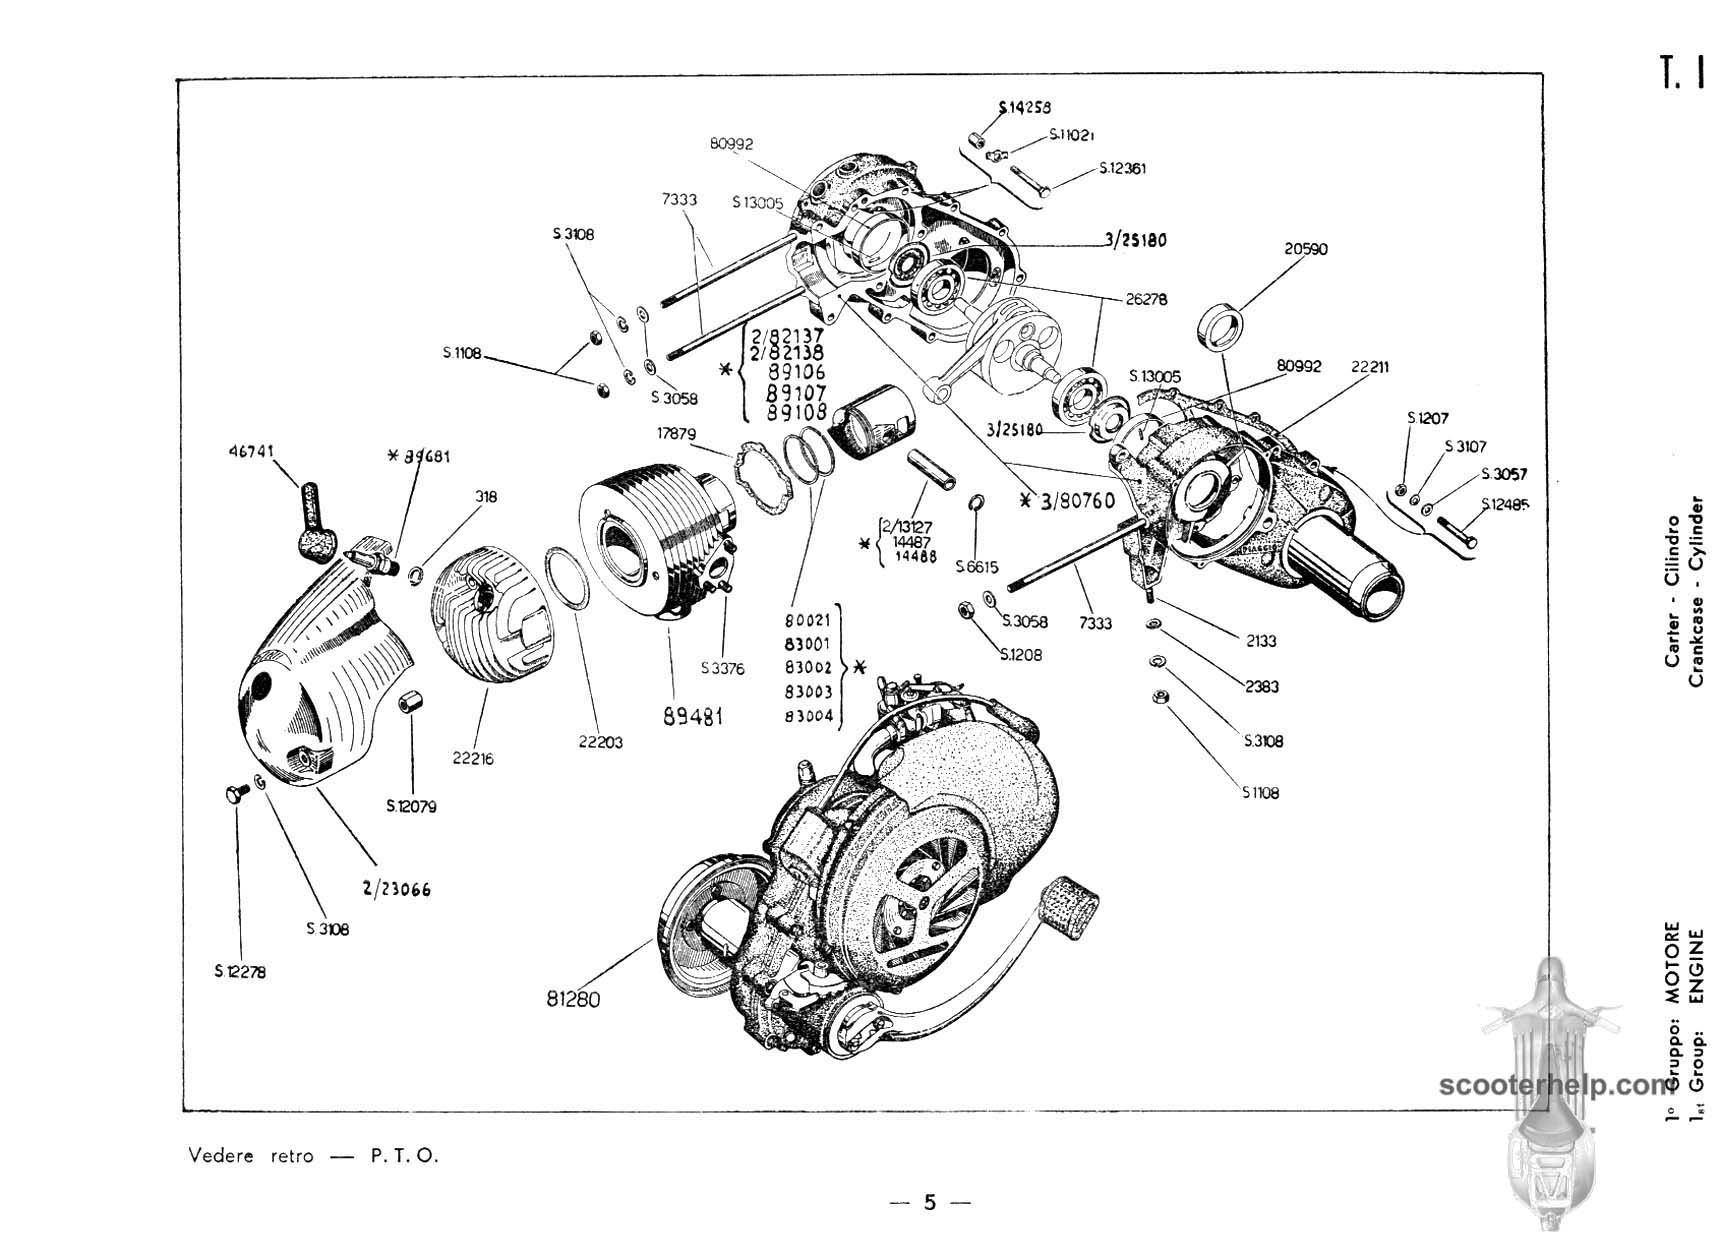 Vespa 150 Engine Diagram Wiring And Ebooks Lx Vb1t Parts Manual Rh Scooterhelp Com Diagrams Scooter Electrical